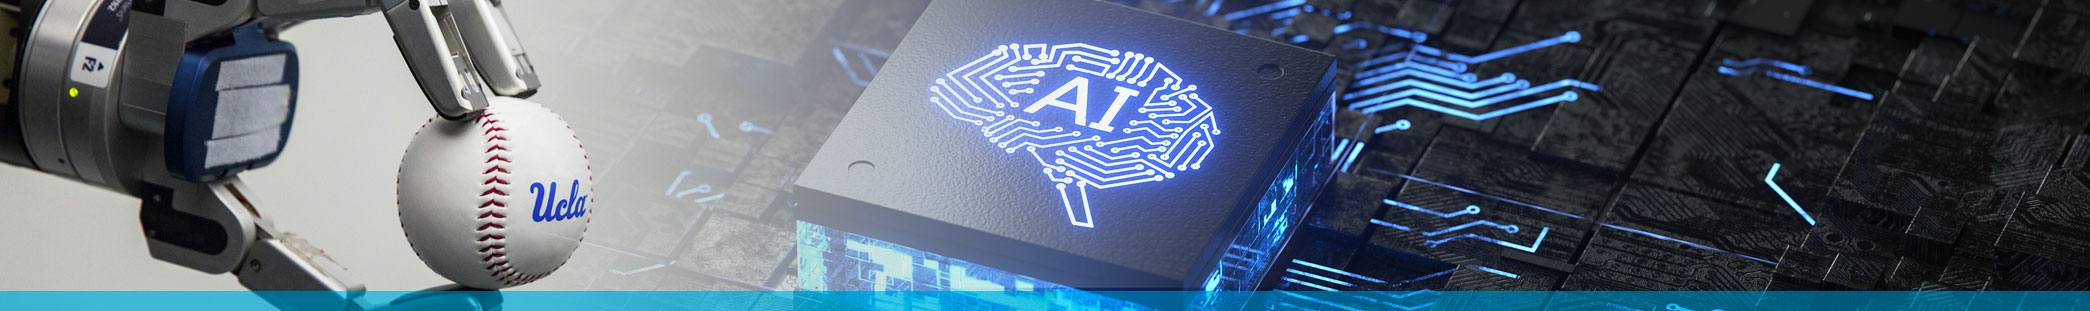 Artificial Intelligence Graphic Banner